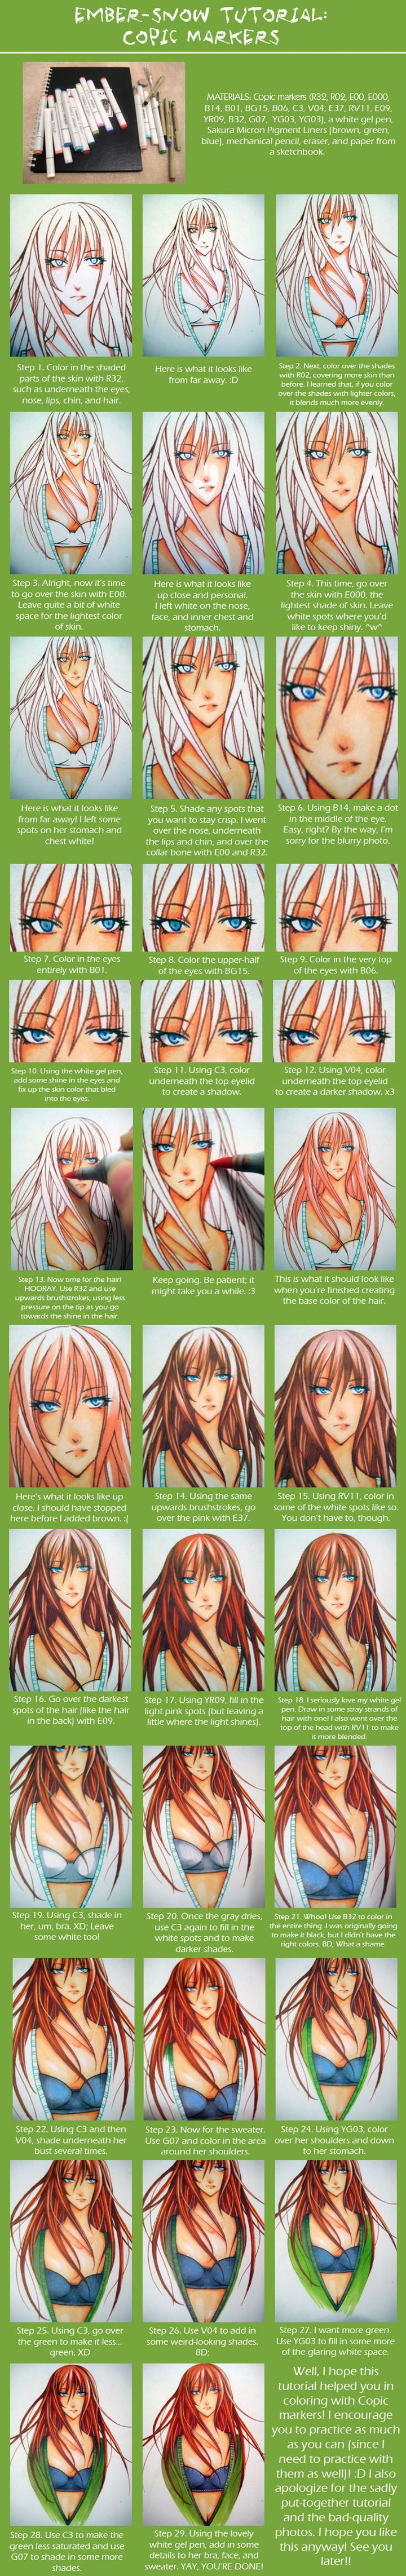 TUTORIAL: Copic Markers by =ember-snow on deviantART